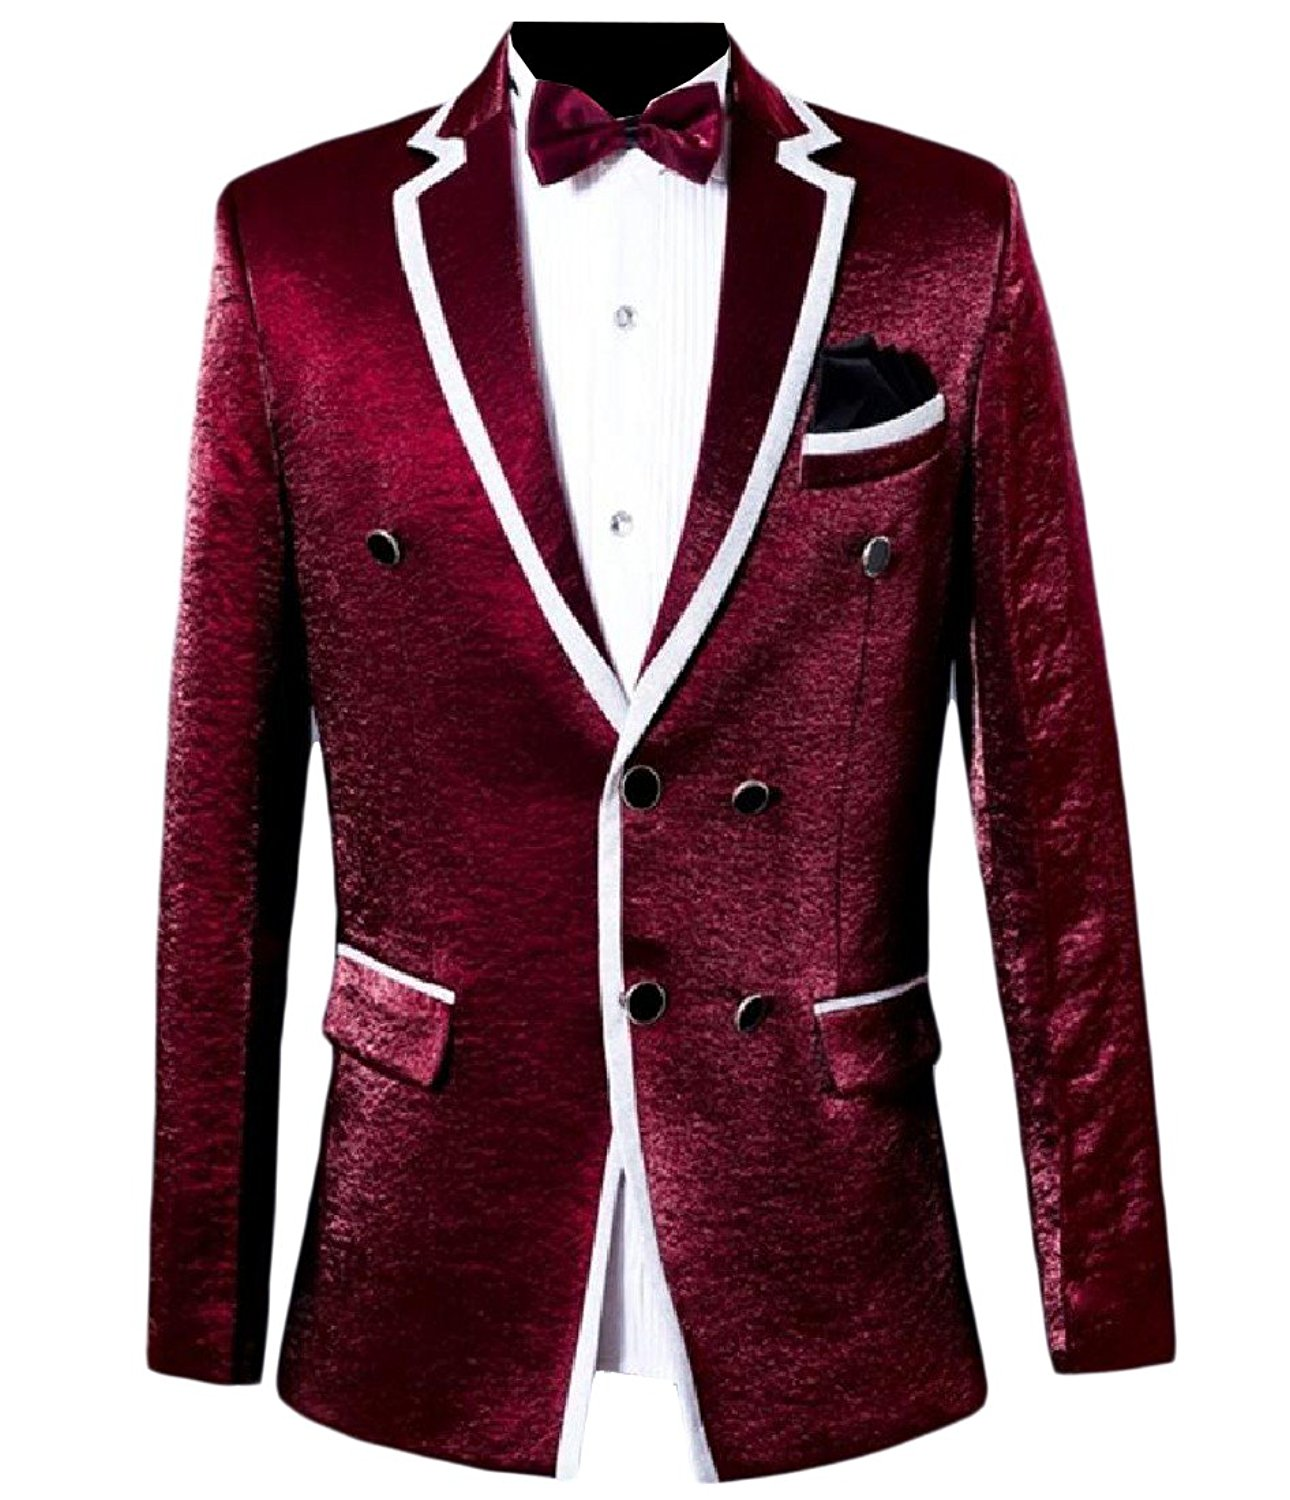 Sheng Xi Mens Solid-Colored Double-Breasted 2 Piece Set Blazer Jacket Coat